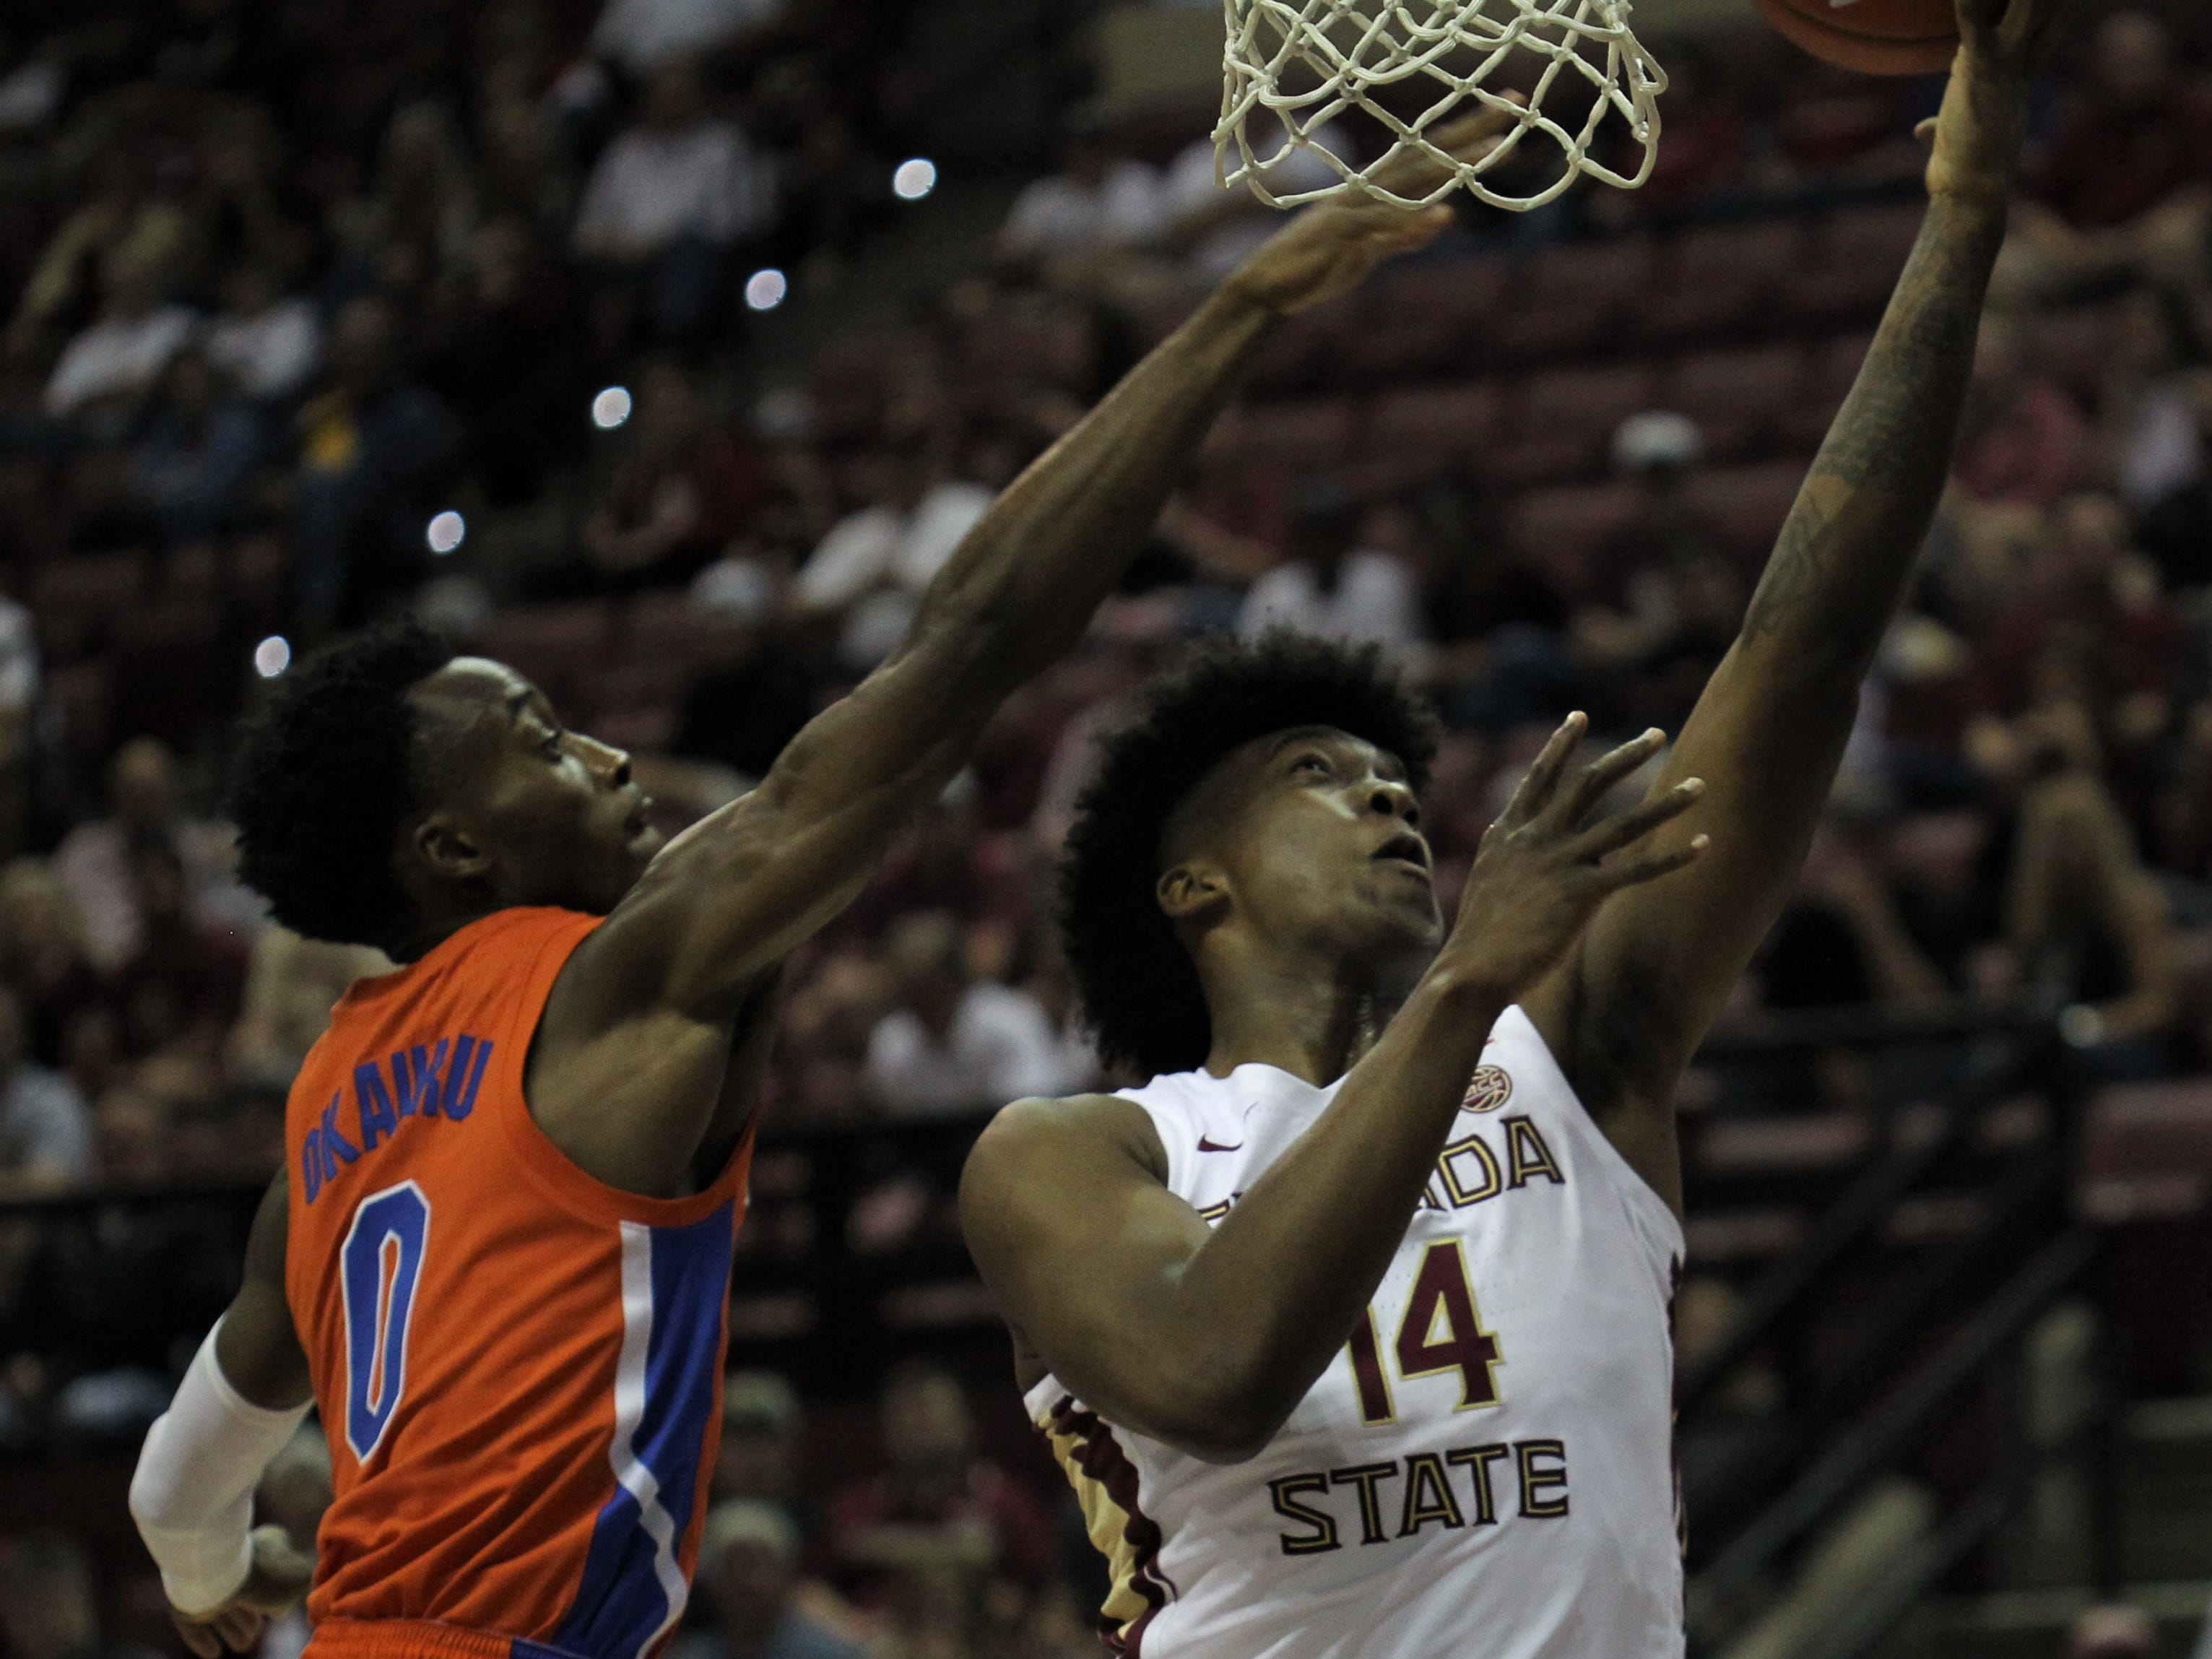 Florida State's Terance Mann goes up for a layup as Florida's Mike Okauru contests during the Sunshine Showdown game Tuesday at the Tucker Civic Center.